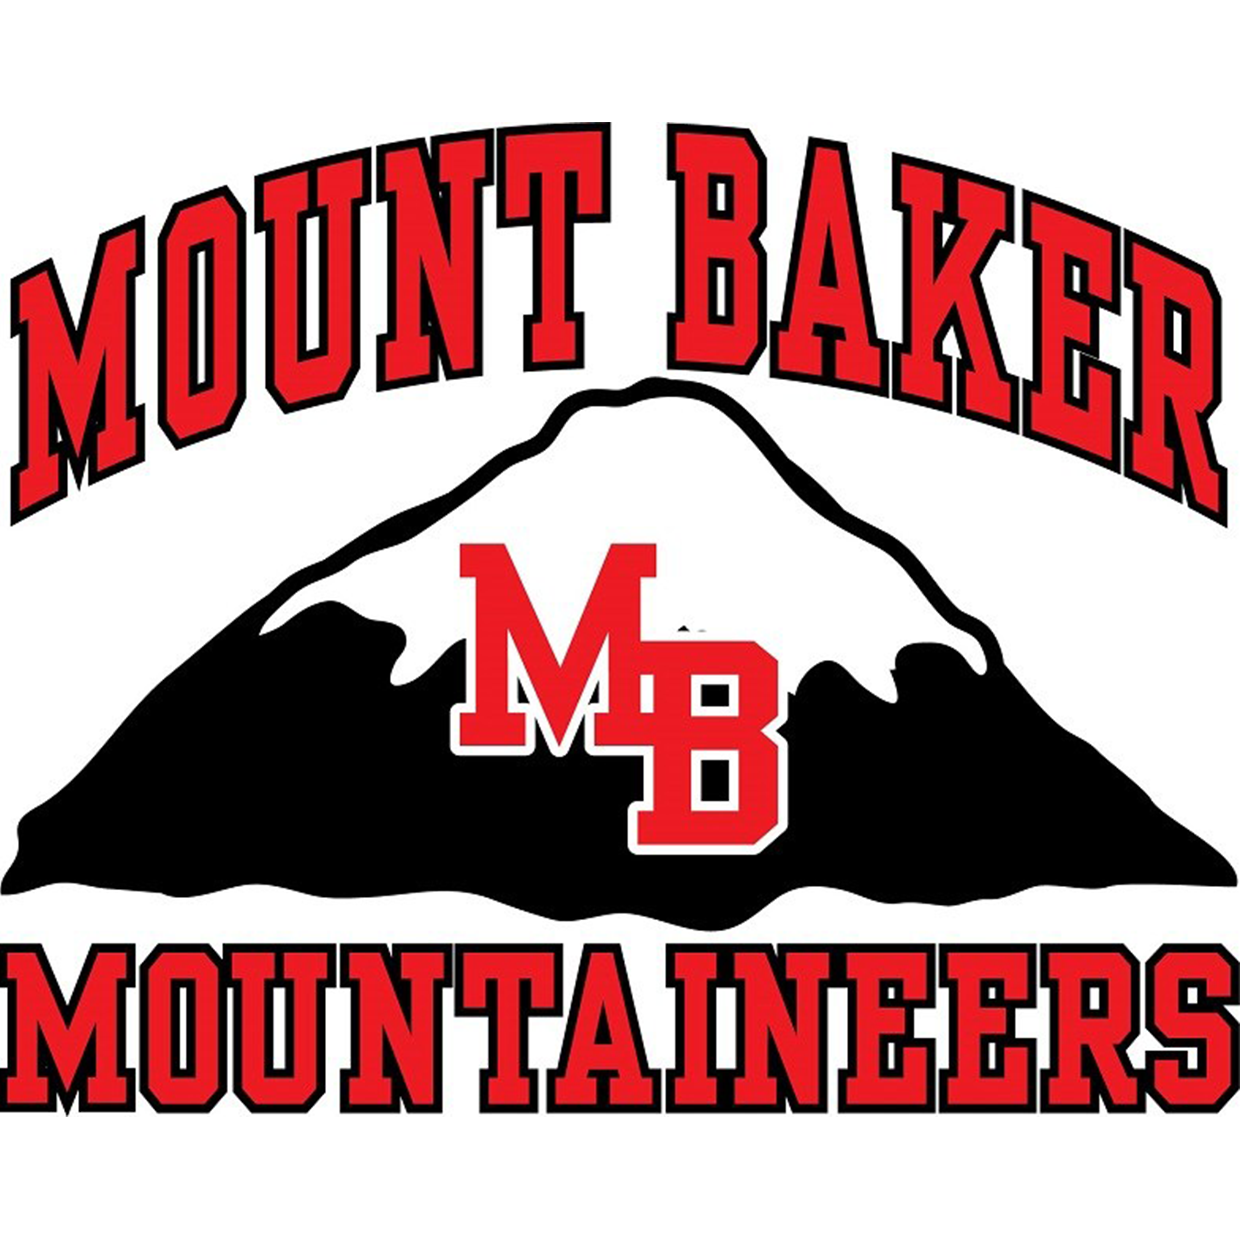 Mt. Baker Mountaineers